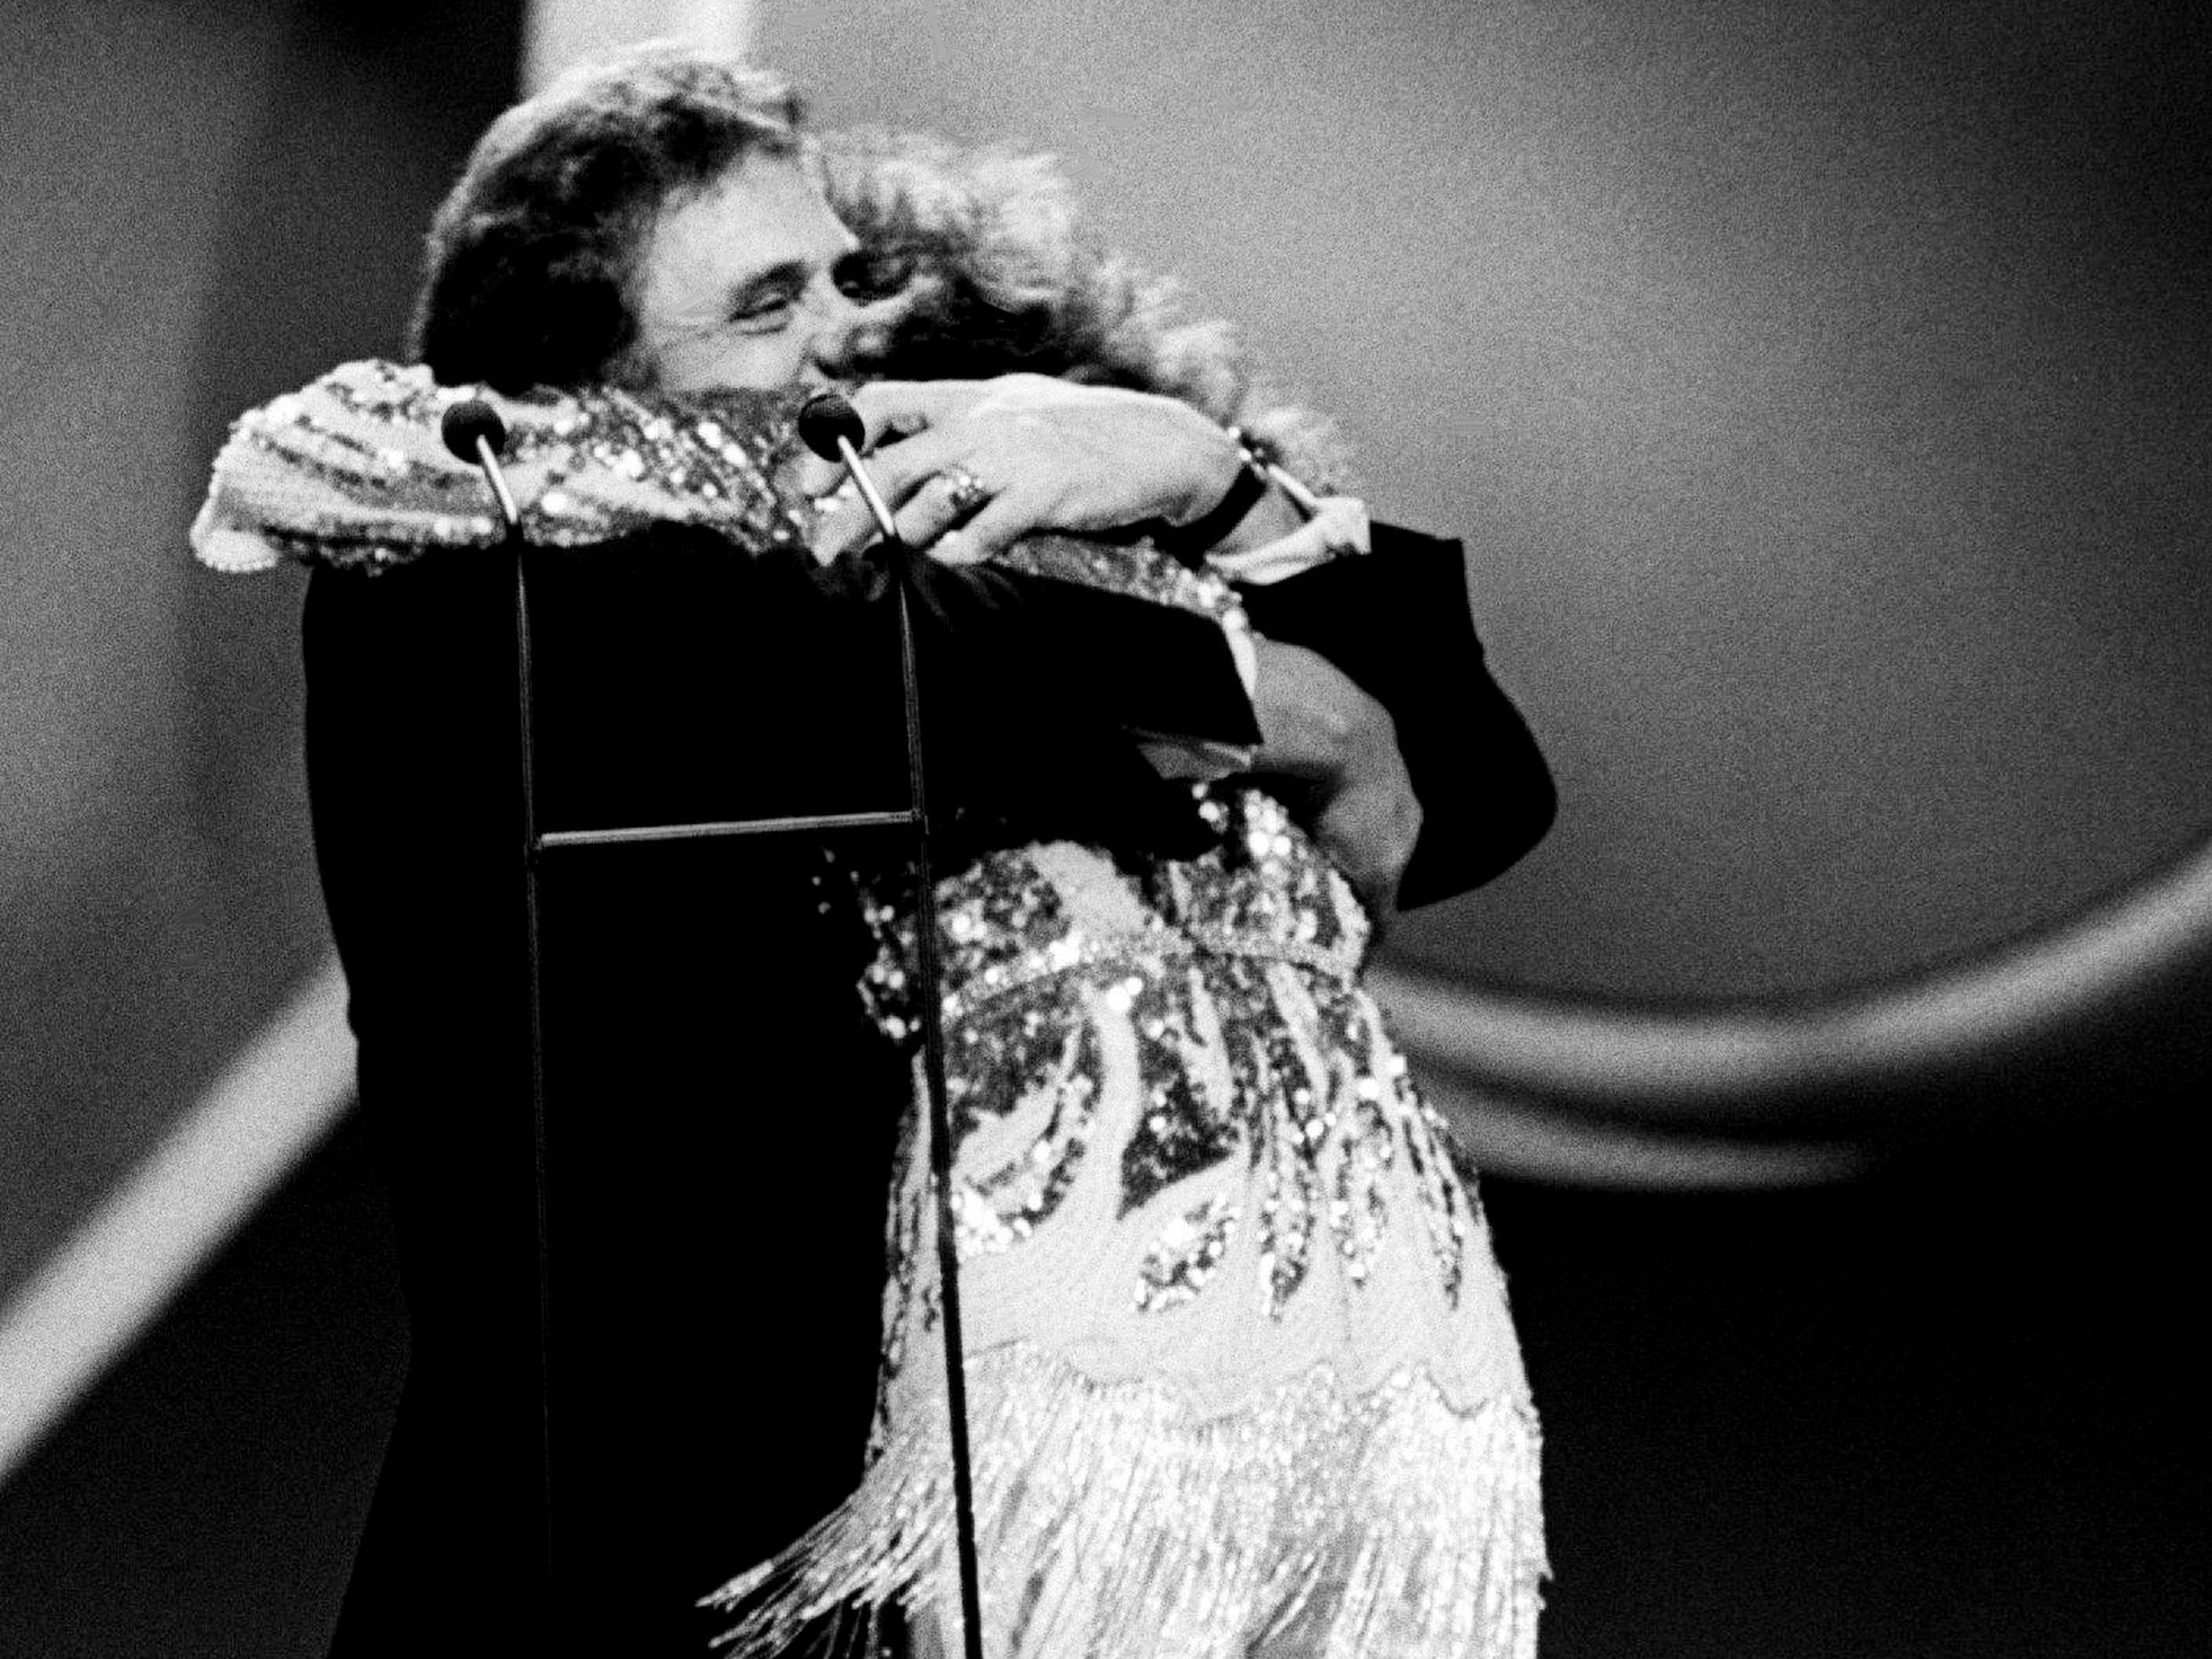 Country music legend Johnny Cash welcomes Loretta Lynn into the Country Music Hall of Fame during the 22nd annual CMA Awards gala at the Grand Ole Opry House on Oct. 10, 1988.